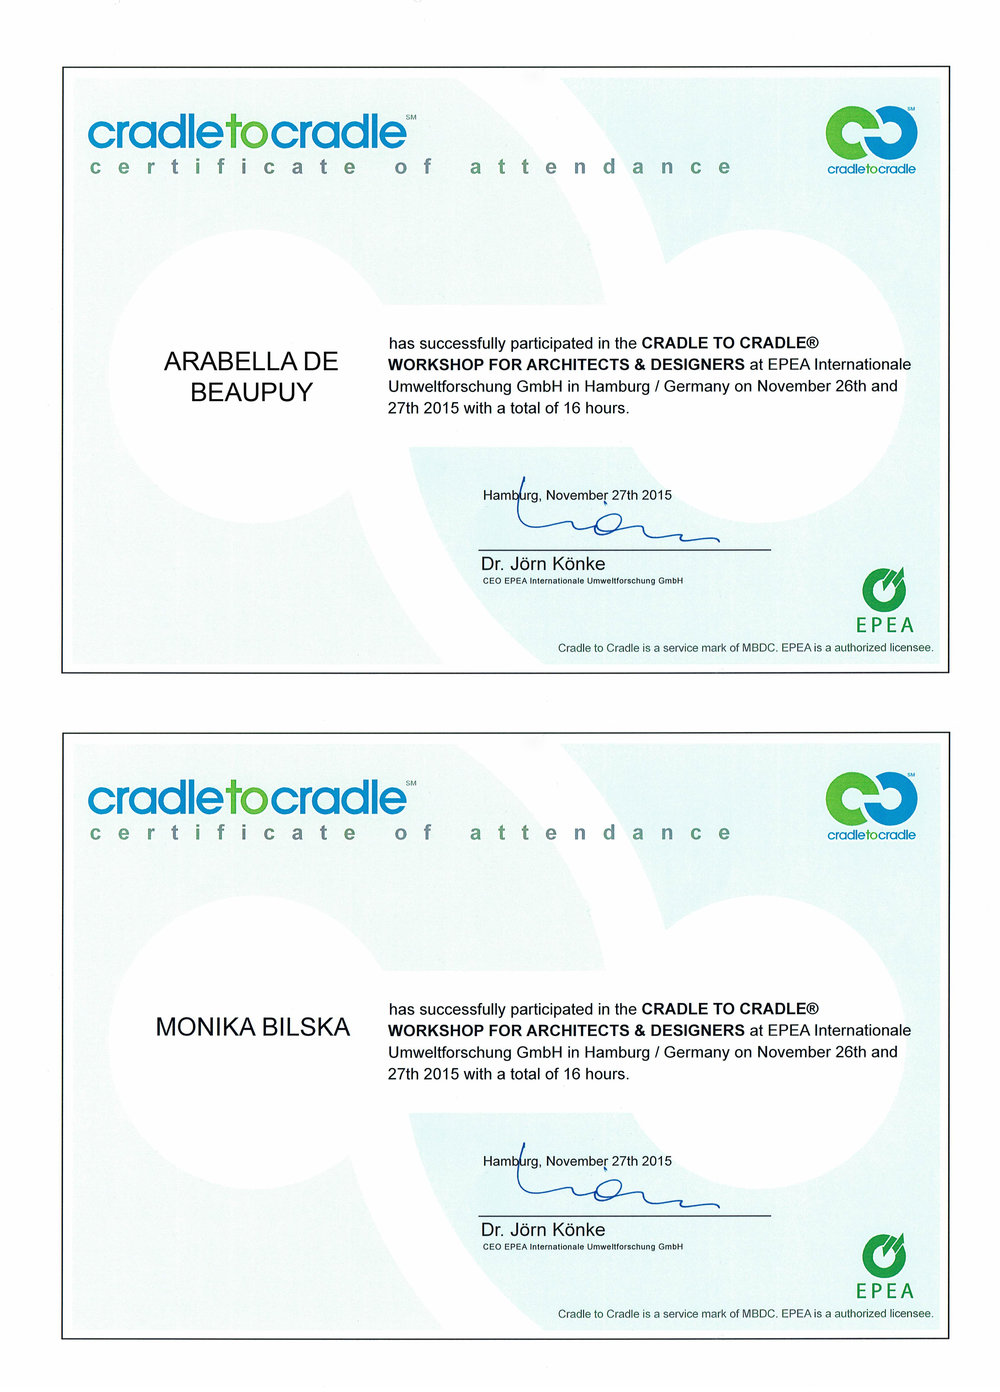 Bilska de Beaupuy completed Cradle to Cradle training for Architects and Designers. 2015